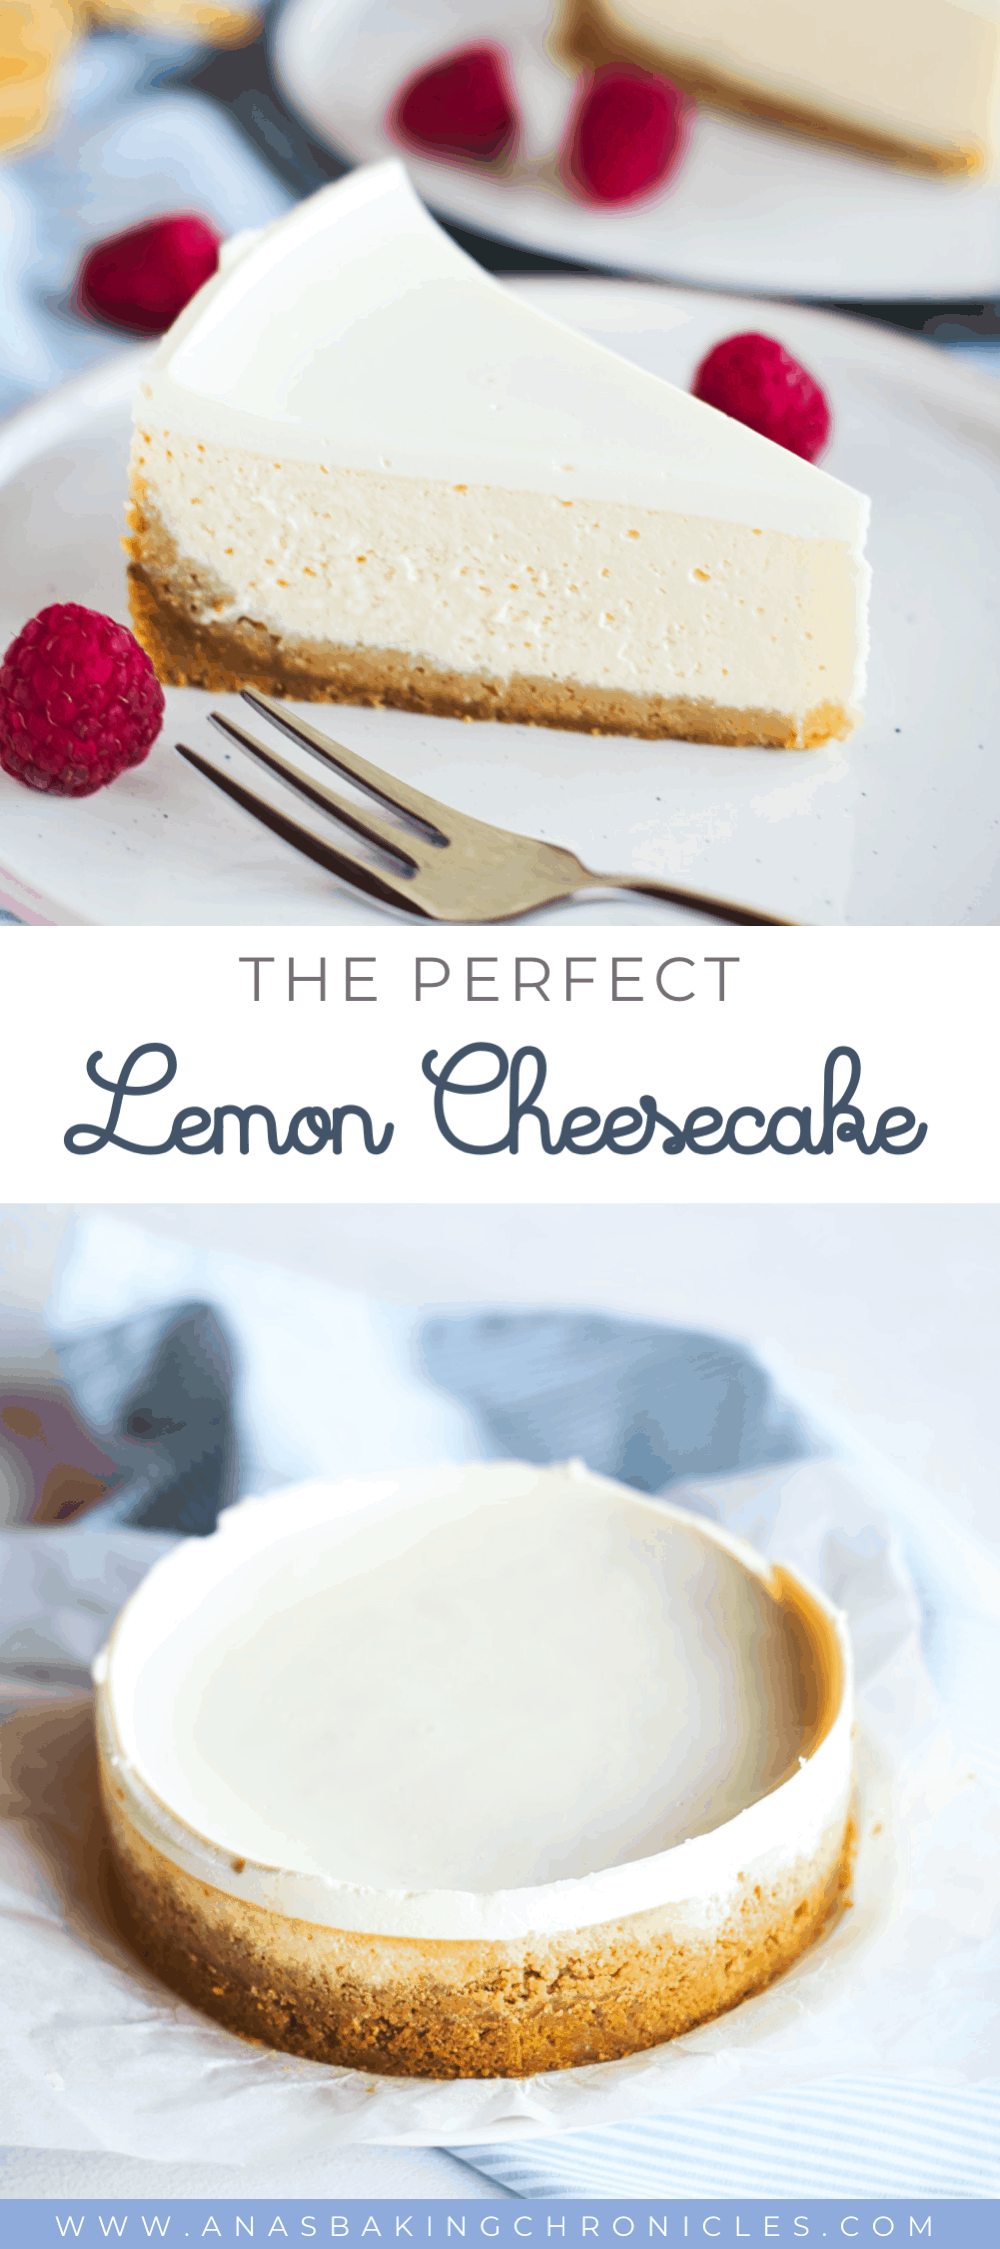 This is the lightest and the creamiest cheesecake you'll ever, EVER eat! It perfectly balances the tartness and the sweetness of the cake and has a texture that melts in your mouth. Scrumptious! ⎪www.anasbakingchronicles.com